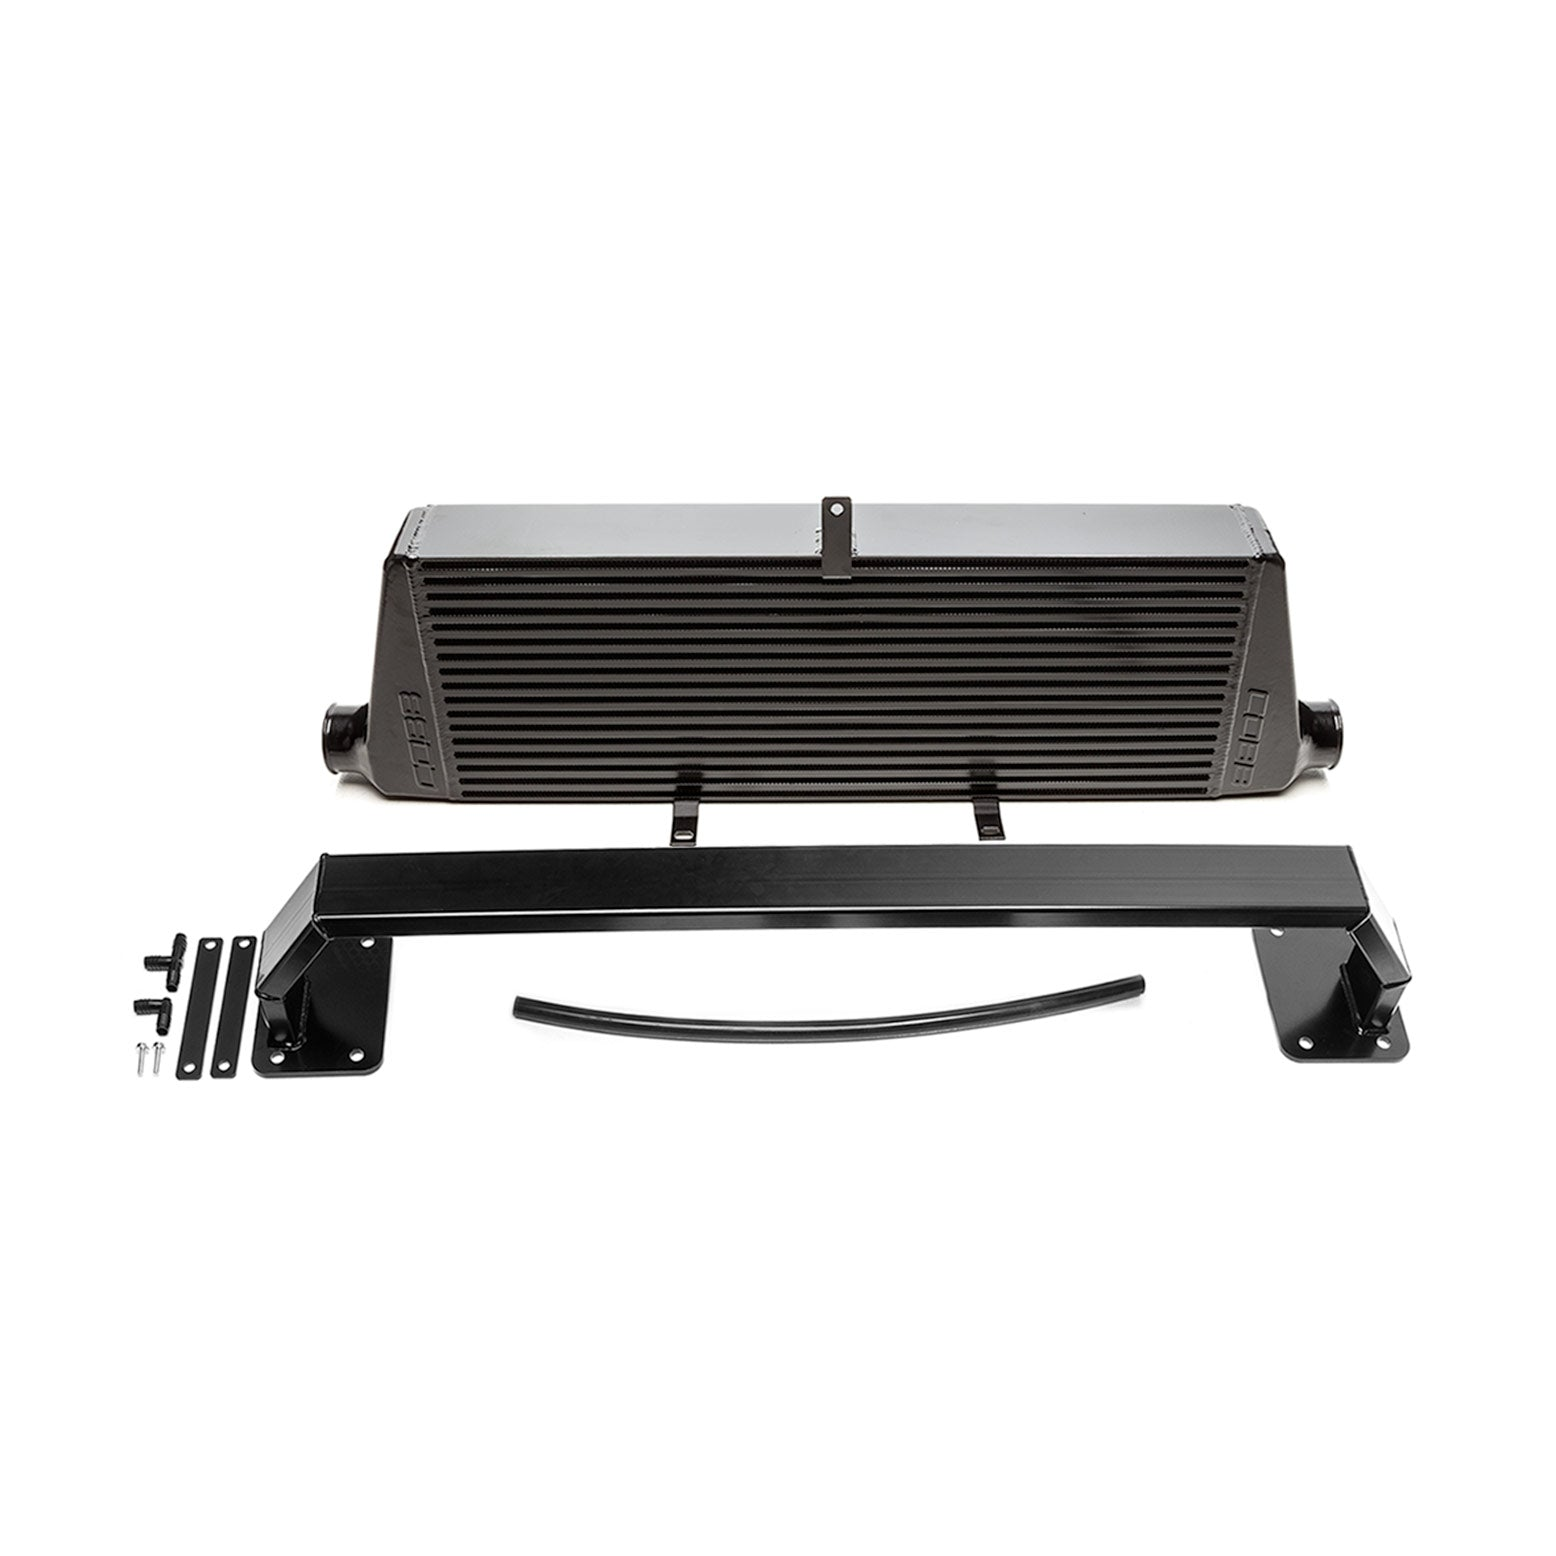 Subaru Front Mount Intercooler Core Black STI / WRX 2011-2014